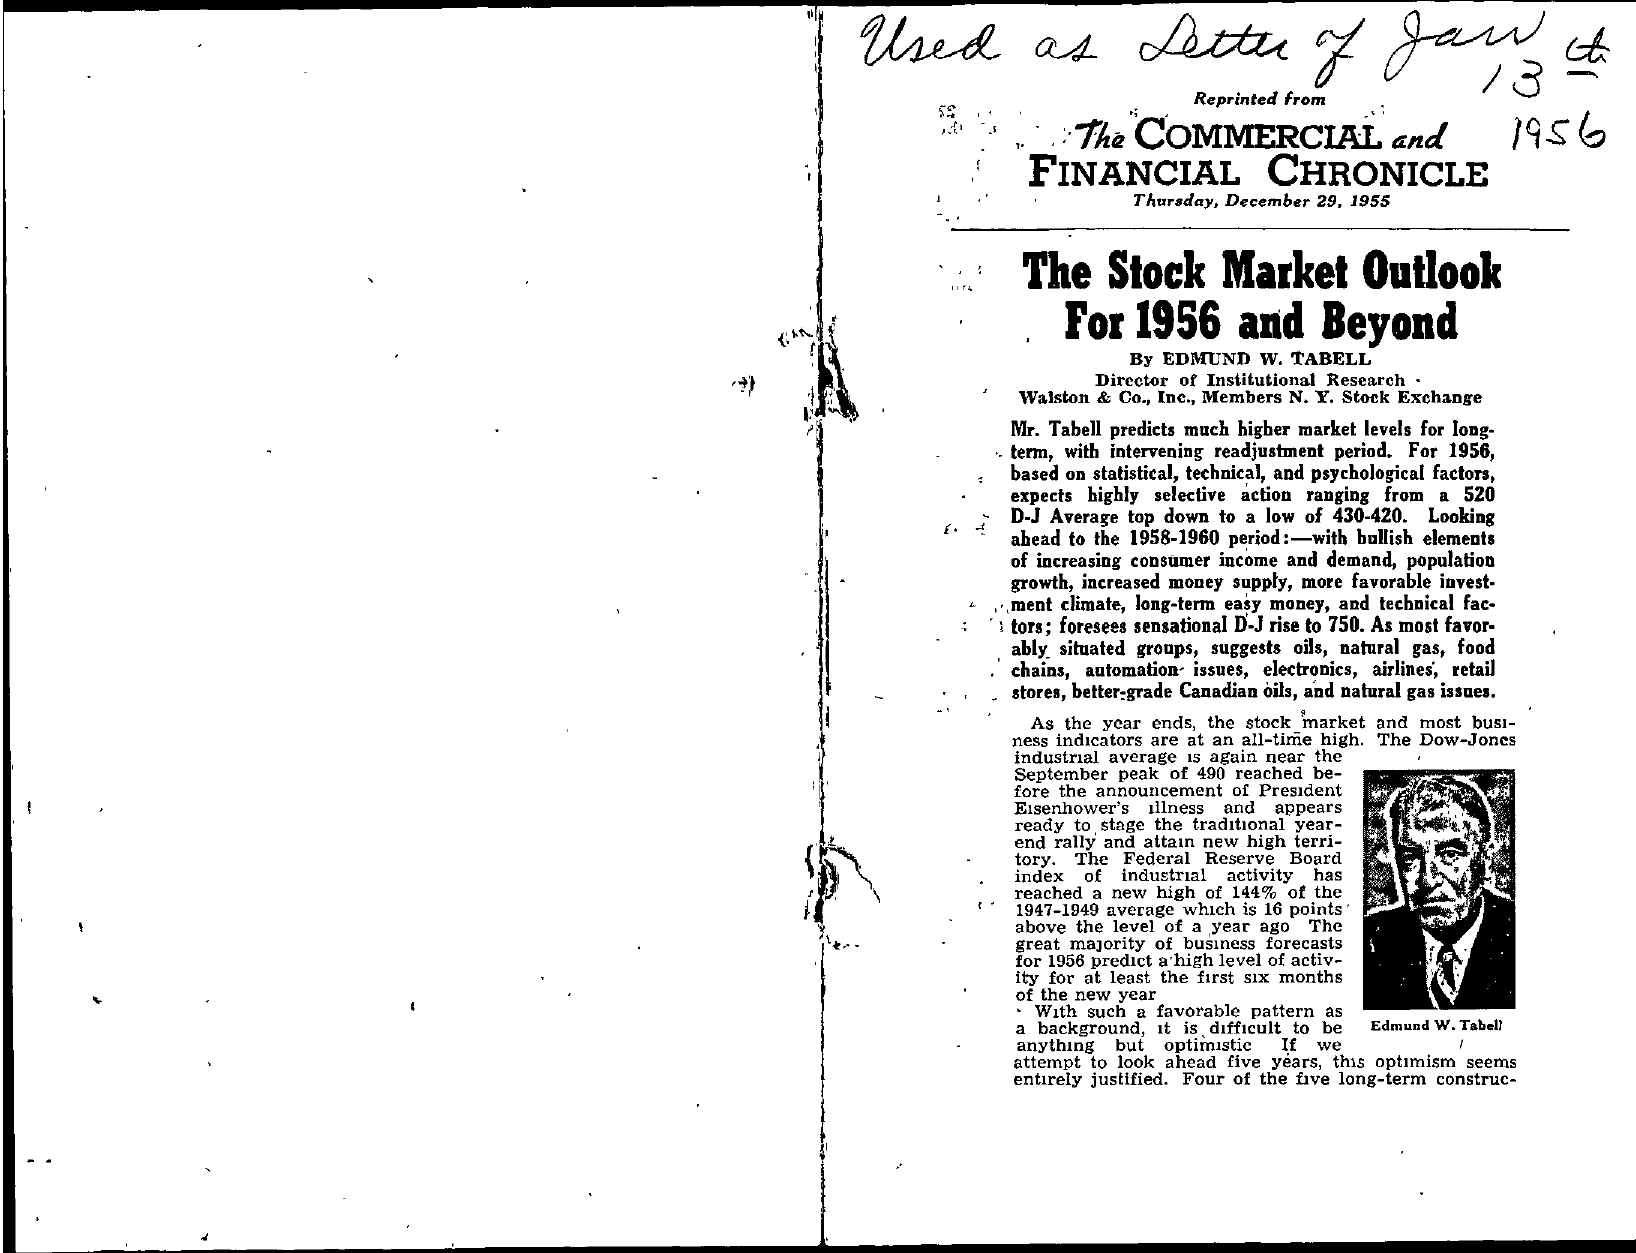 Tabell's Market Letter - January 13, 1956 page 1